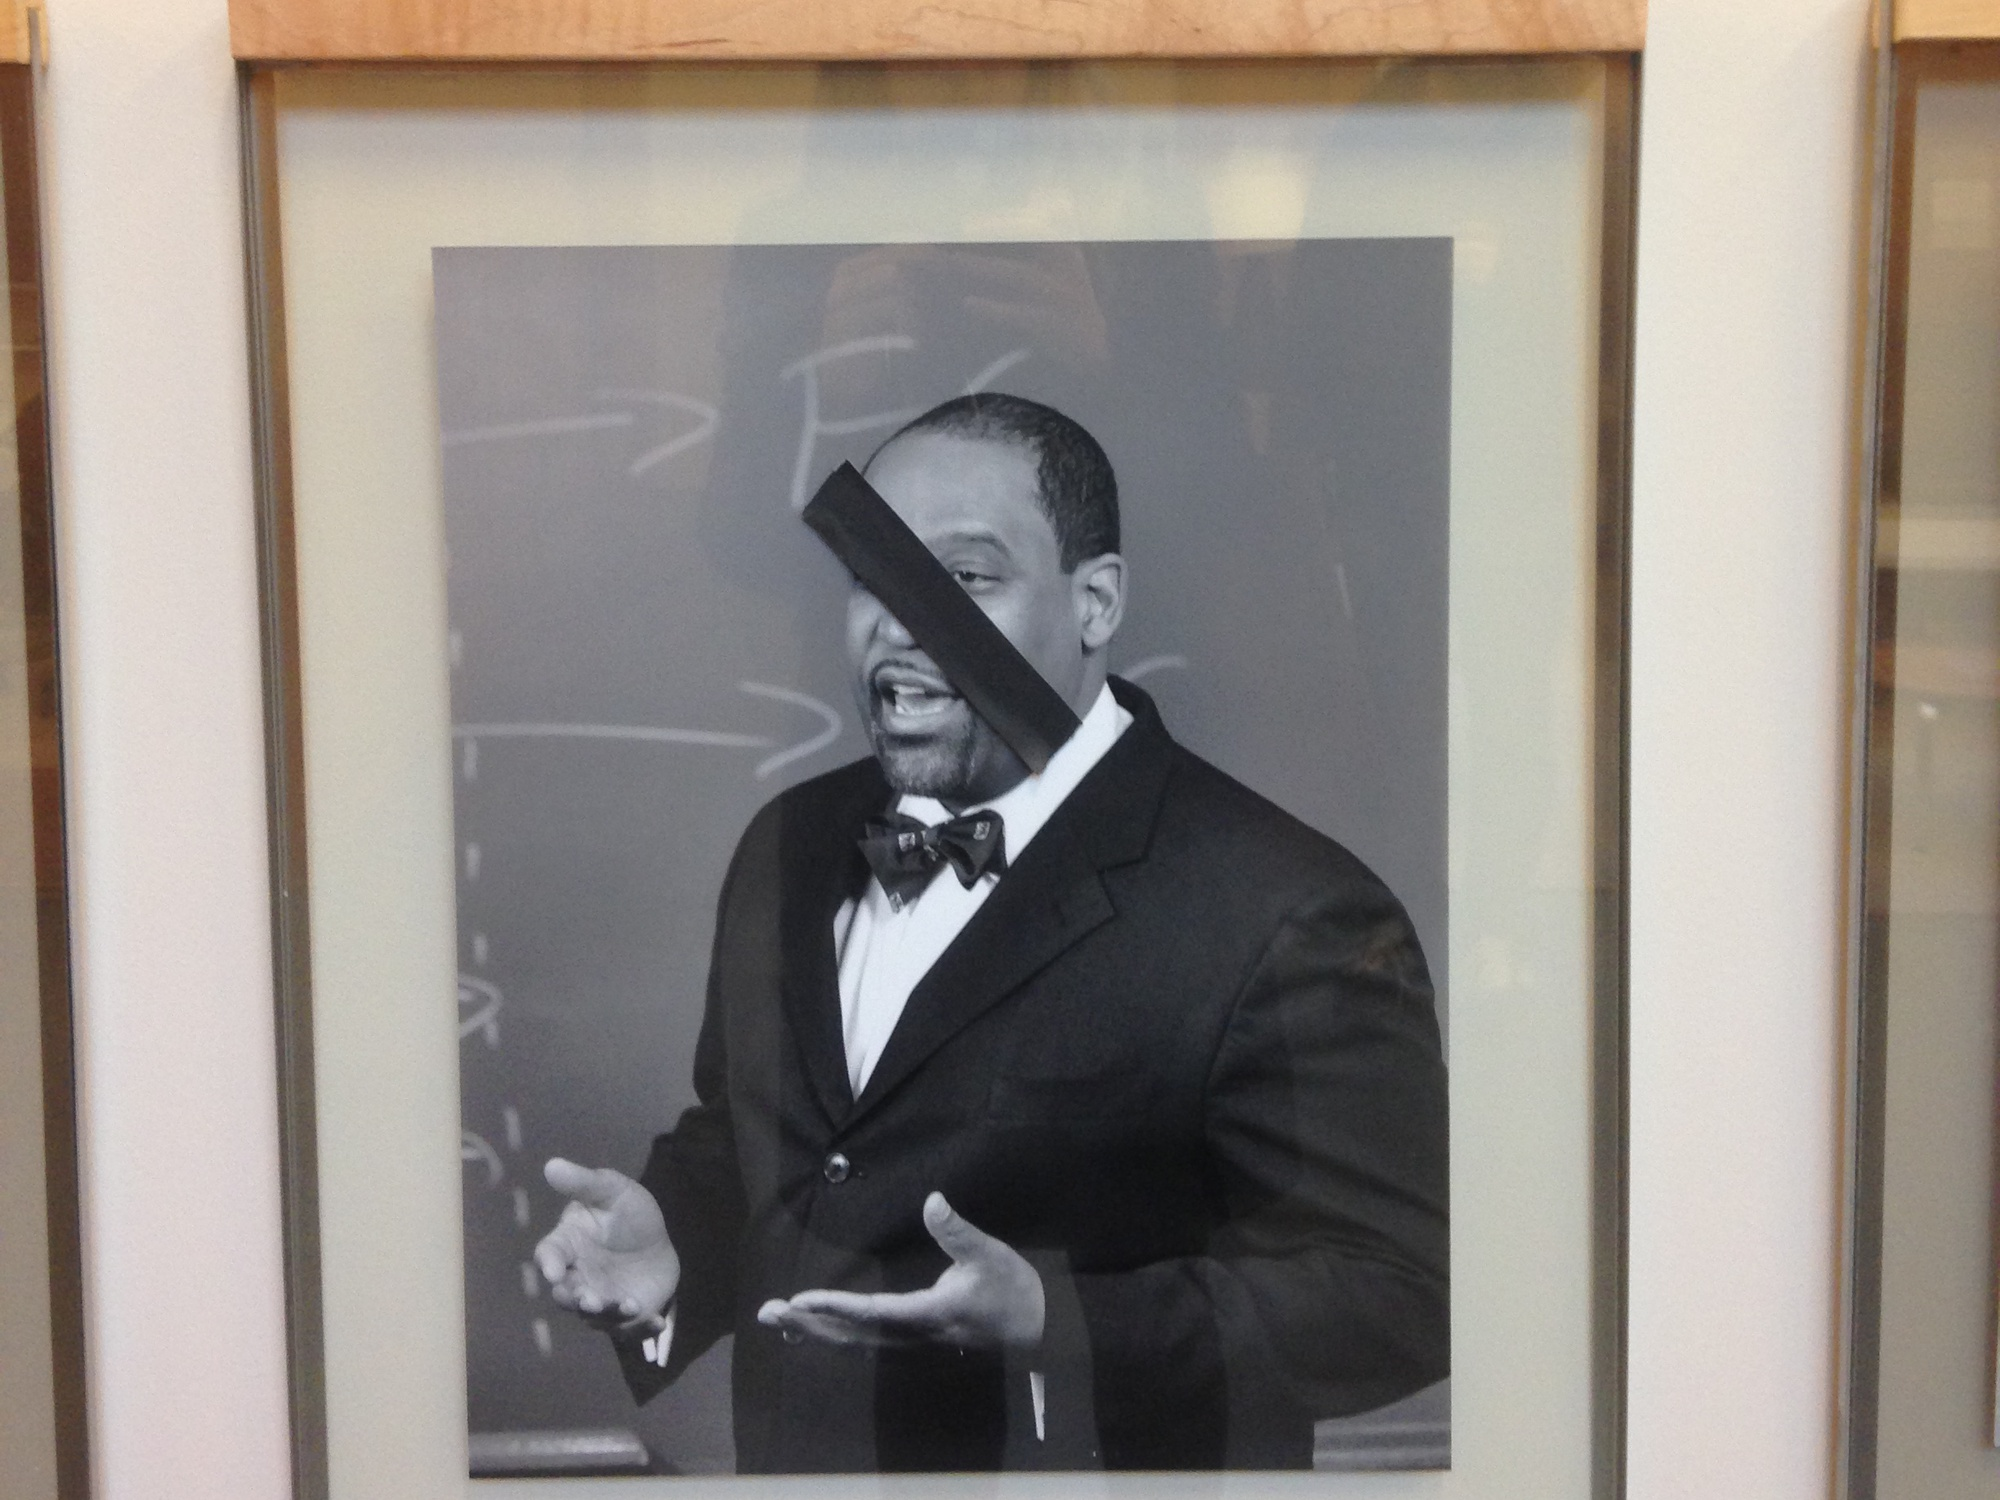 Photos of black Law School professors were covered by pieces of black tape on Thursday morning at Wasserstein Hall.